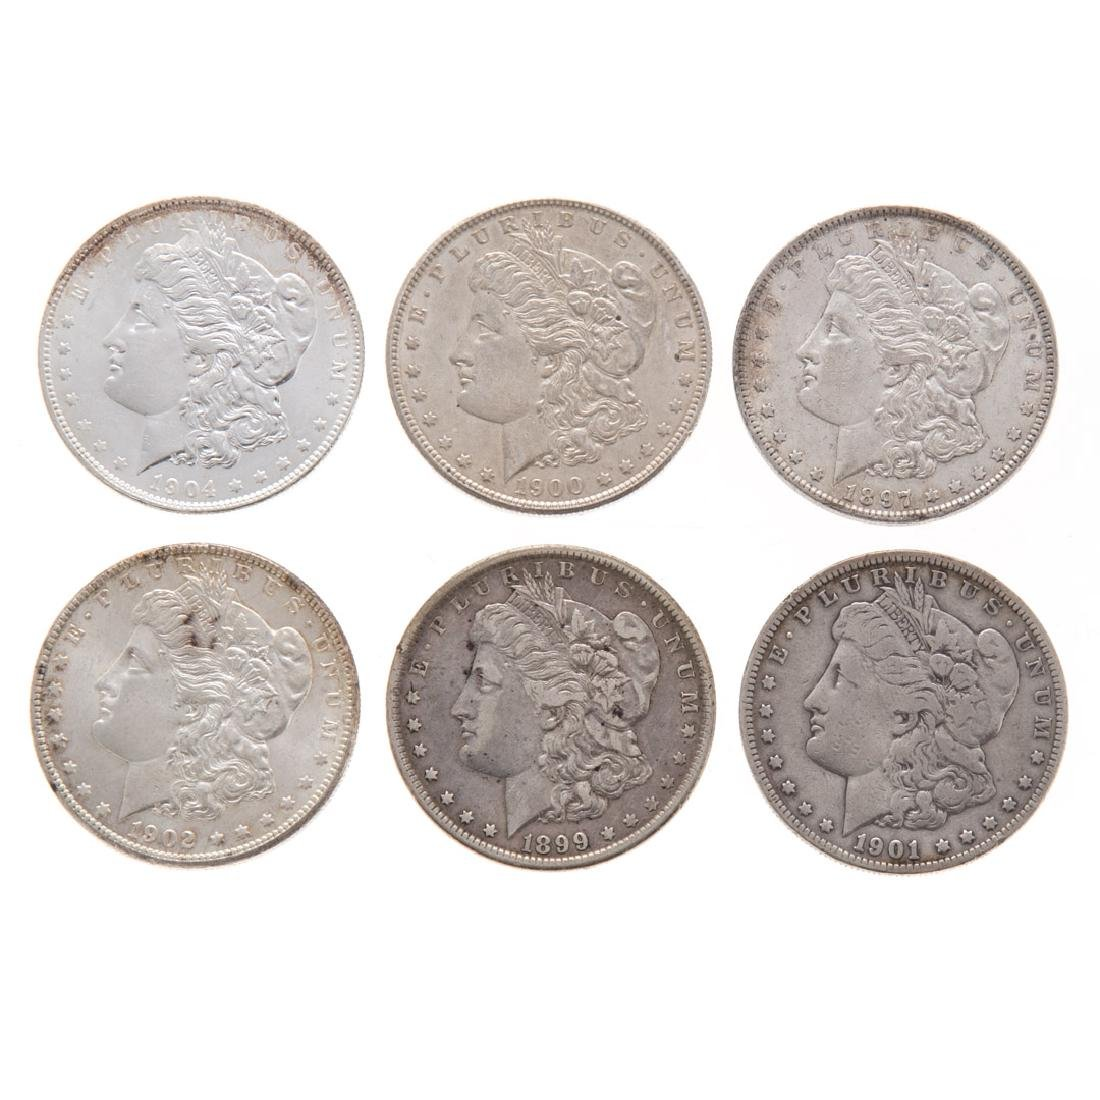 [US] Six Morgan Dollars 1897-1904